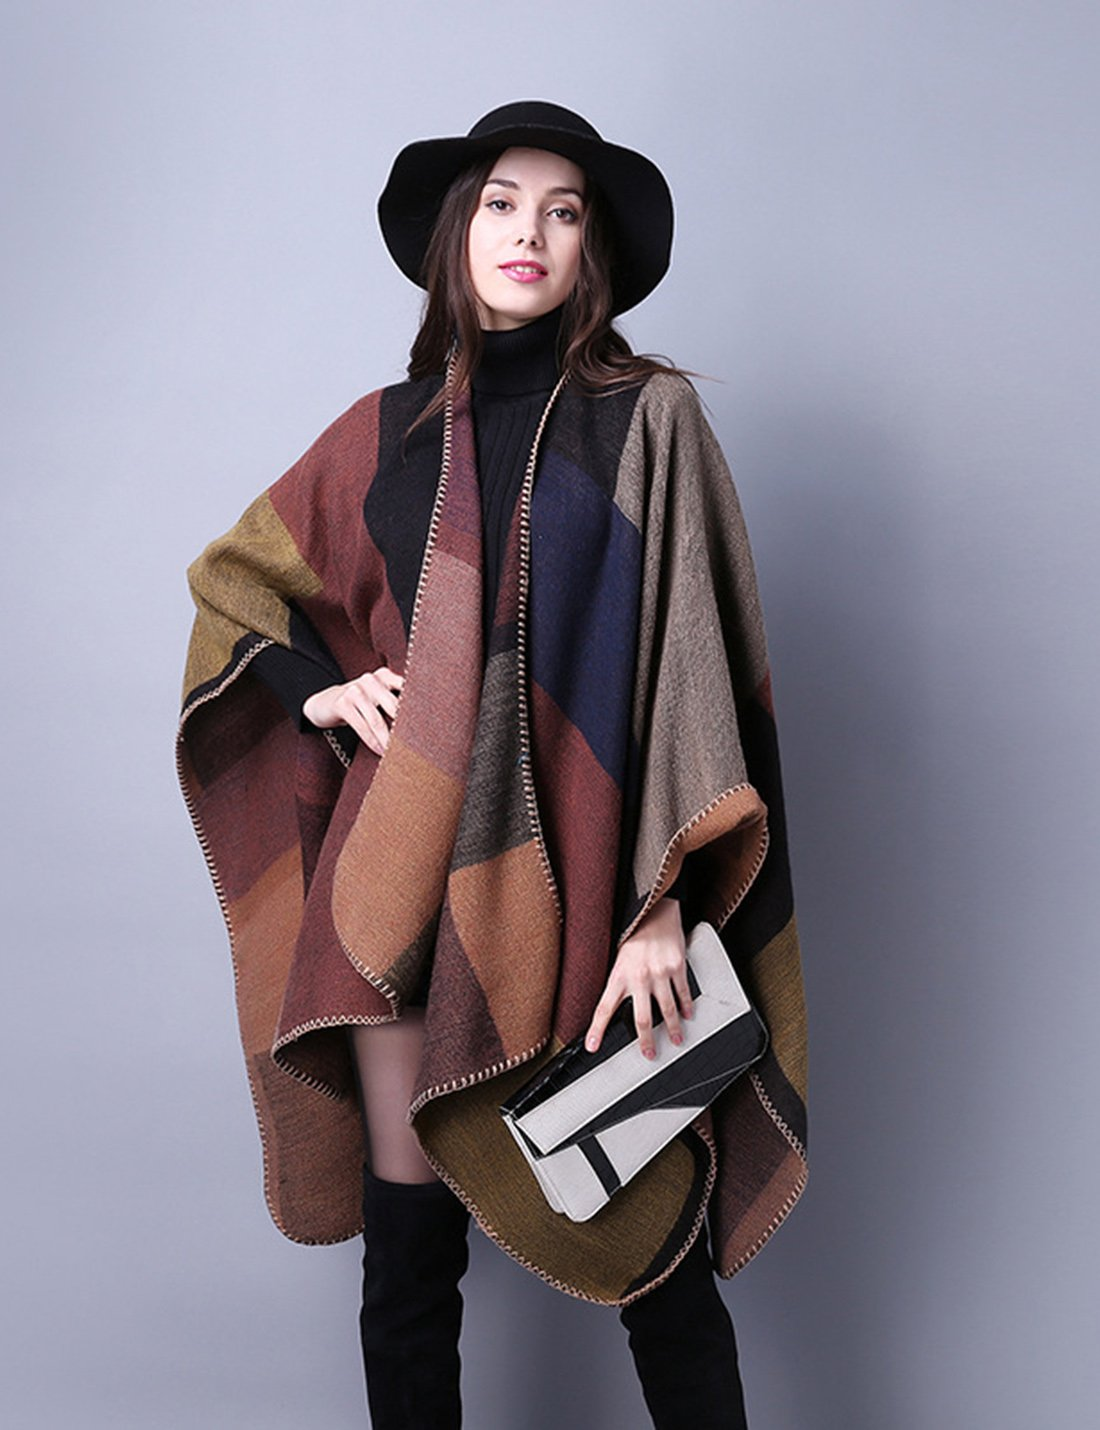 Gihuo Women's Color Block Plaid Open Front Shawl Poncho Cape Wrap Cardigan (Khaki) by Gihuo (Image #3)